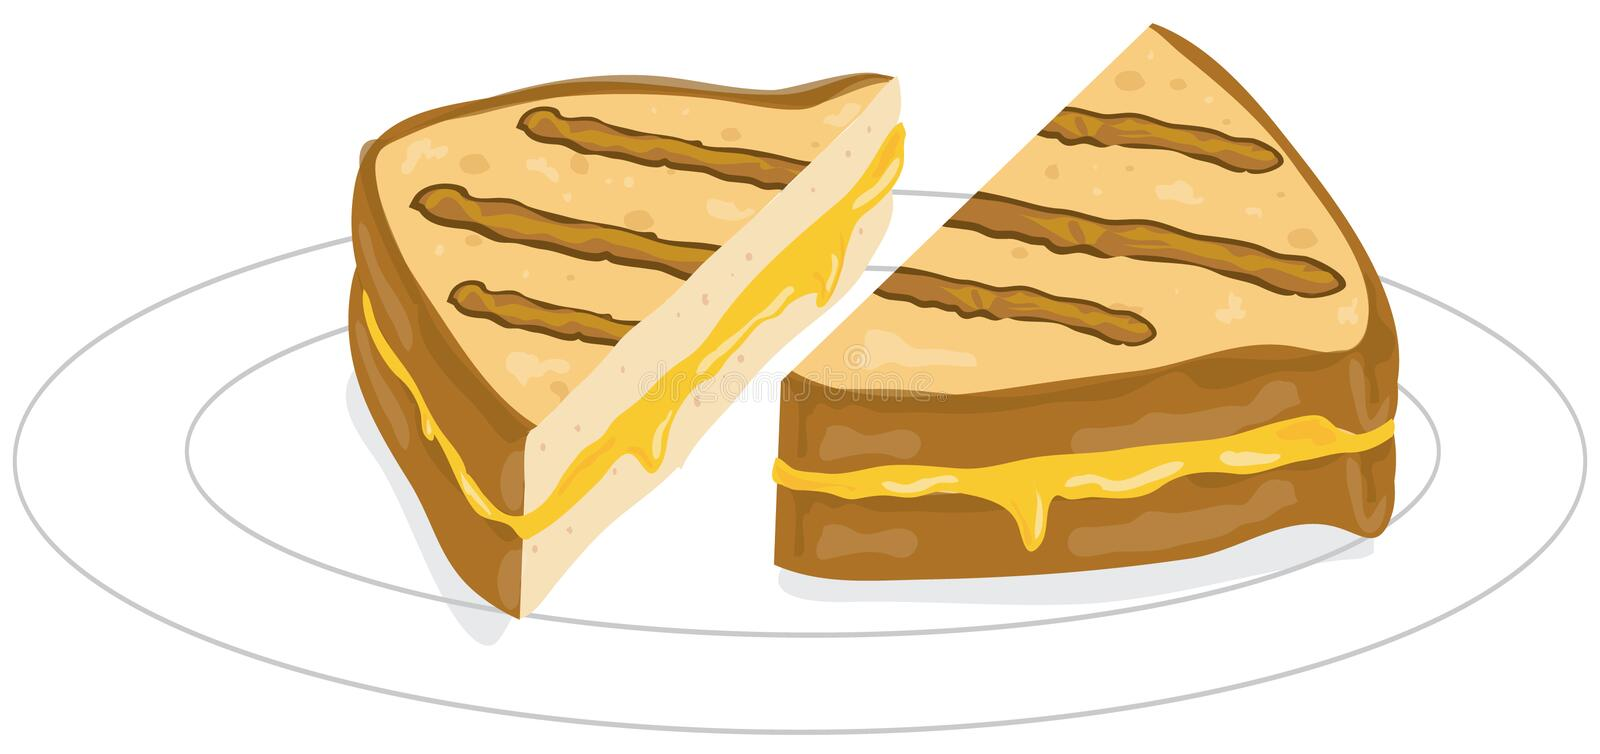 Grilled cheese. Illustration of a grilled cheese sandwich vector illustration